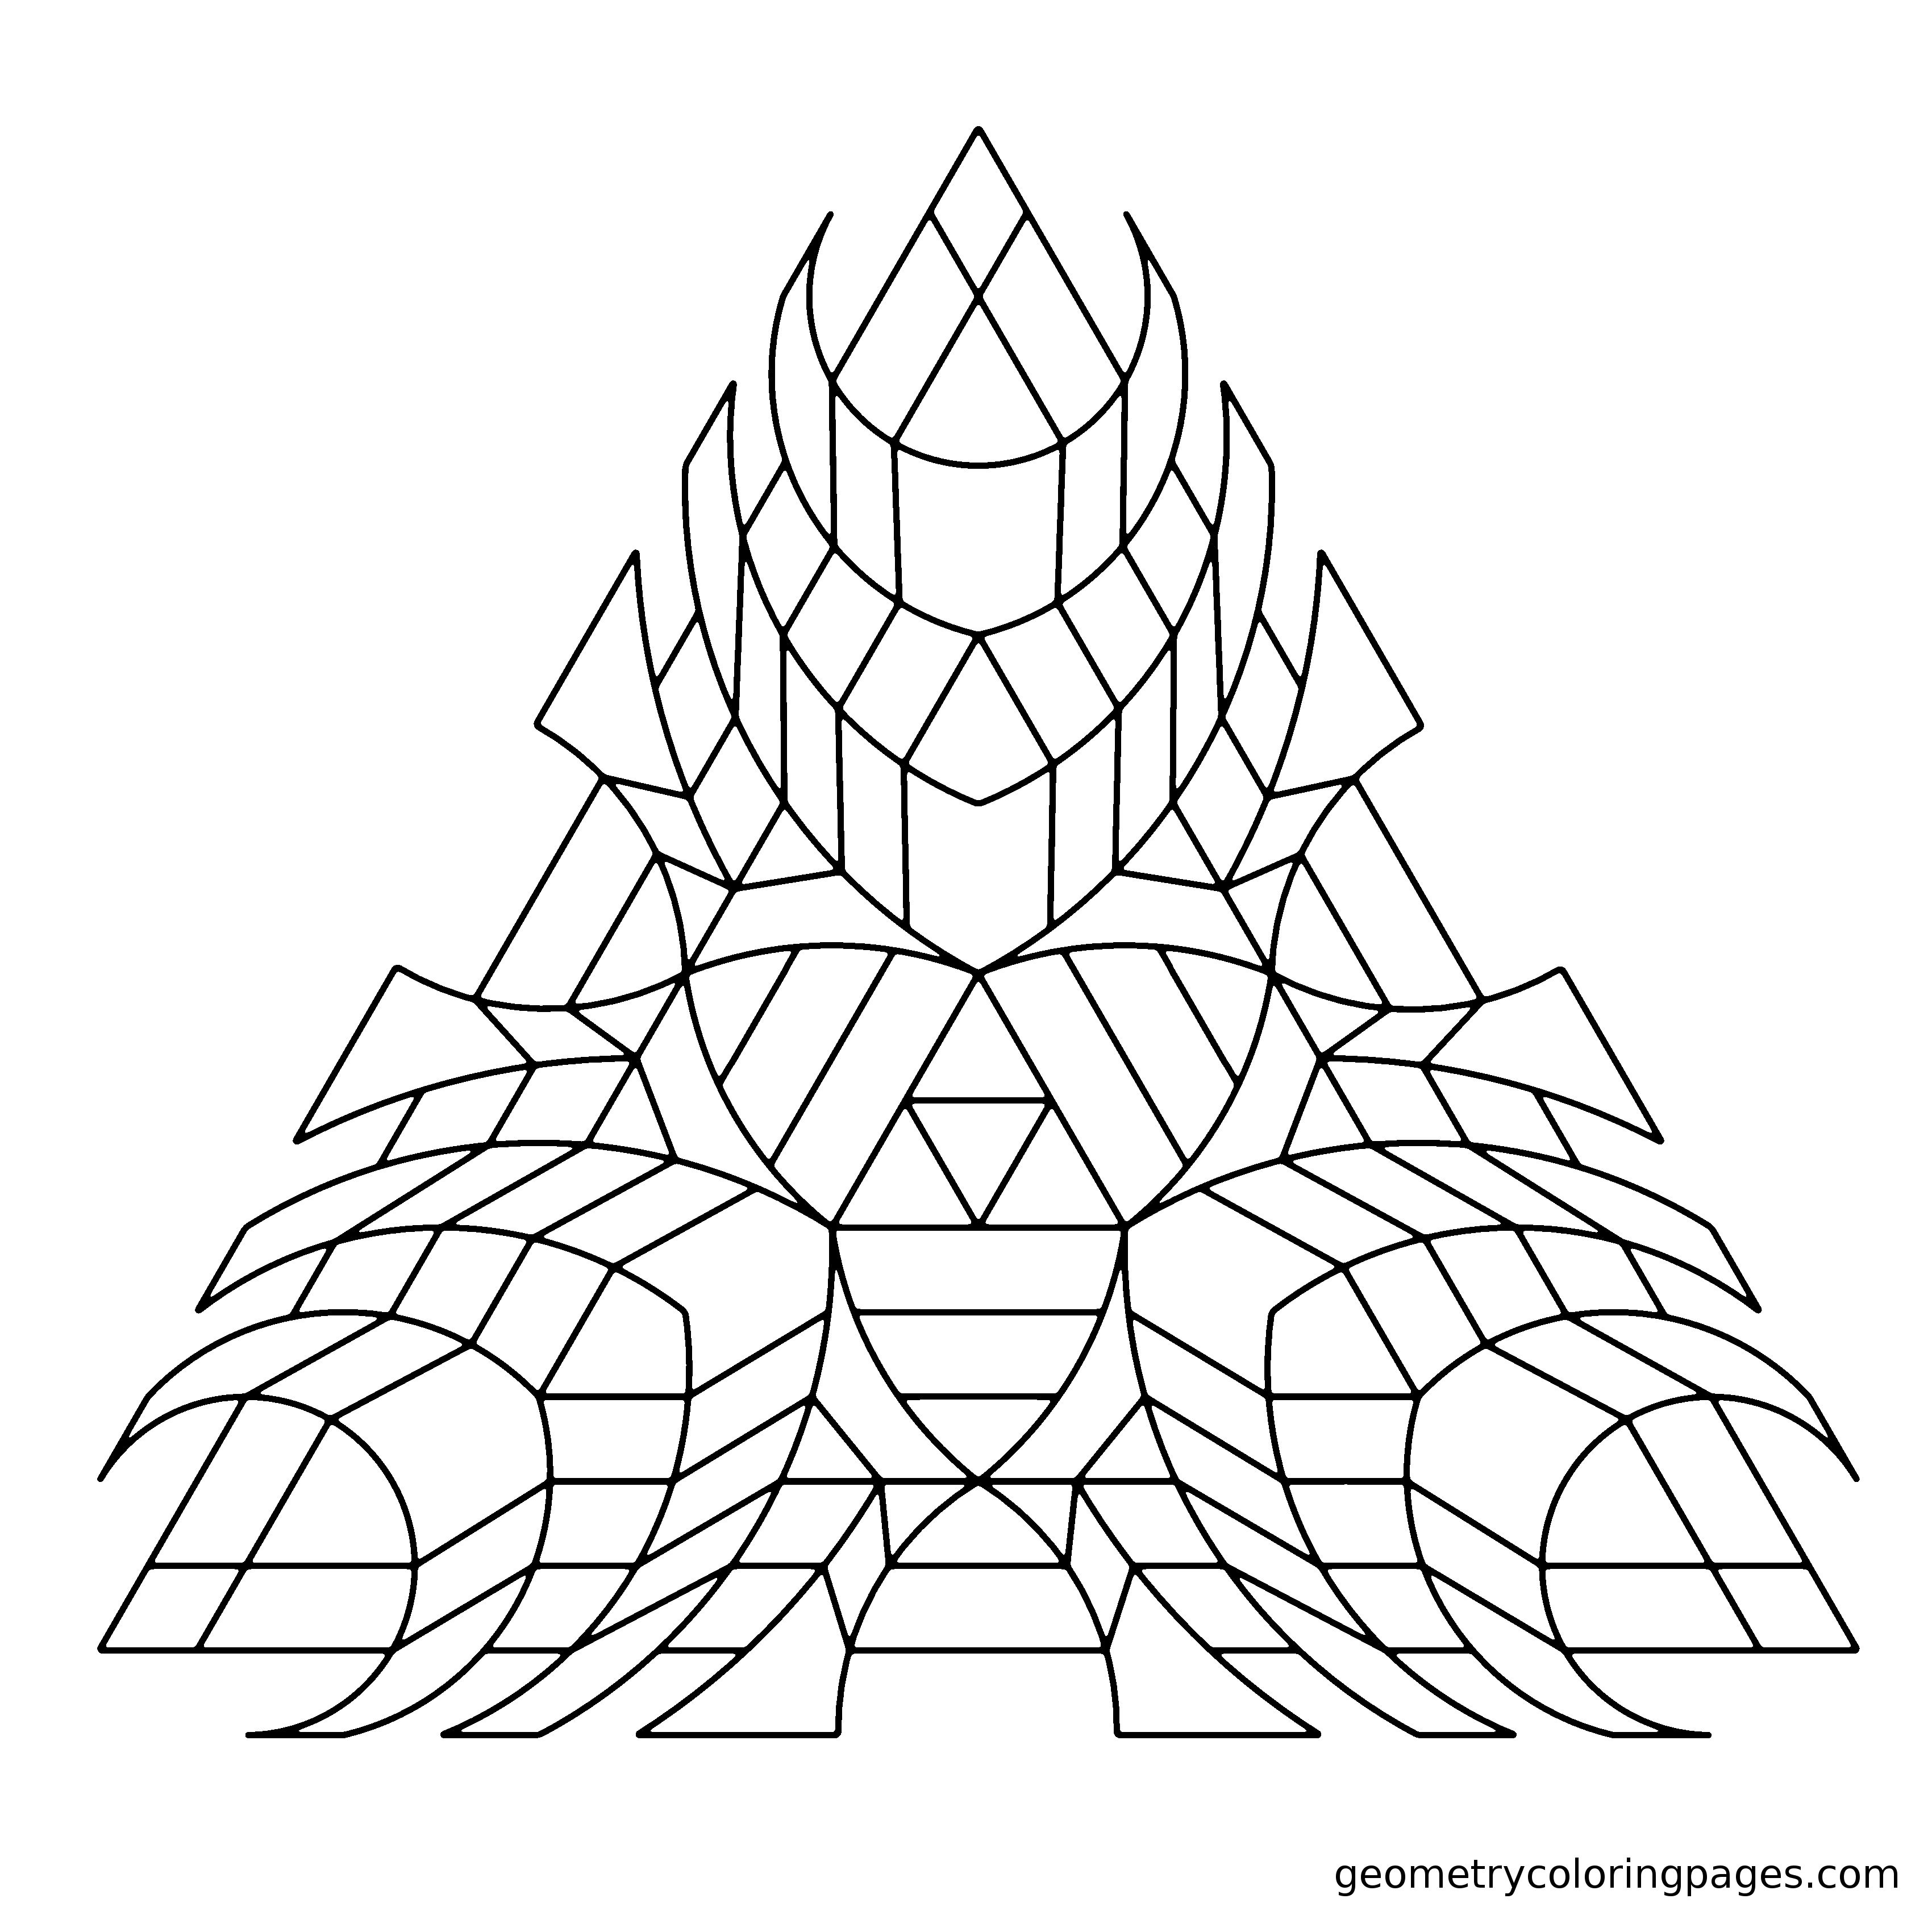 Geometry Coloring Page from geometrycoloringpages.com